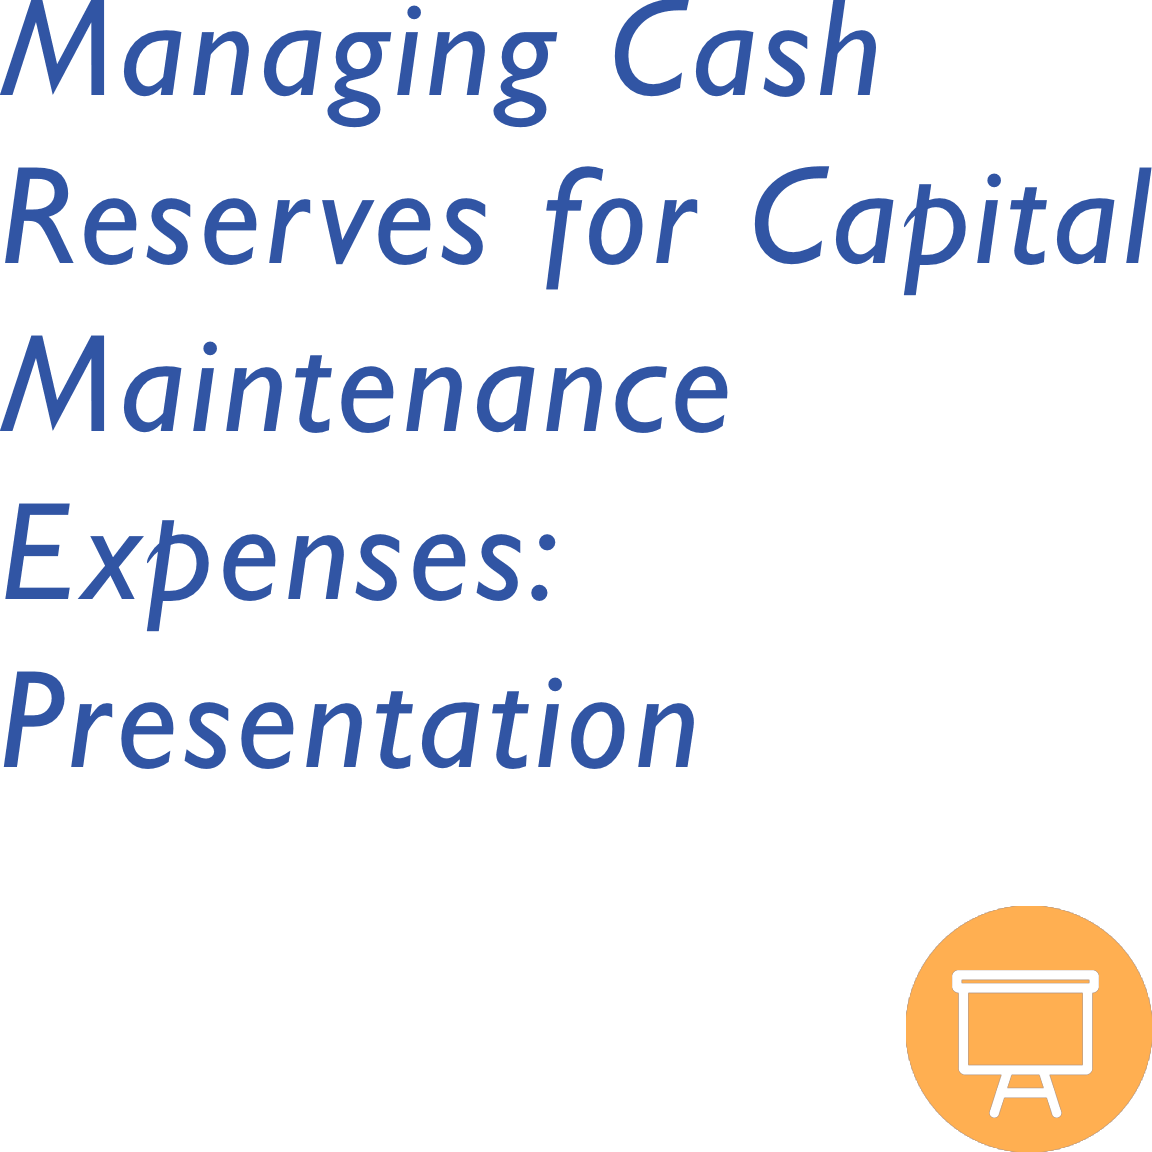 Managing Cash Reserves for Capital Maintenance Expenses